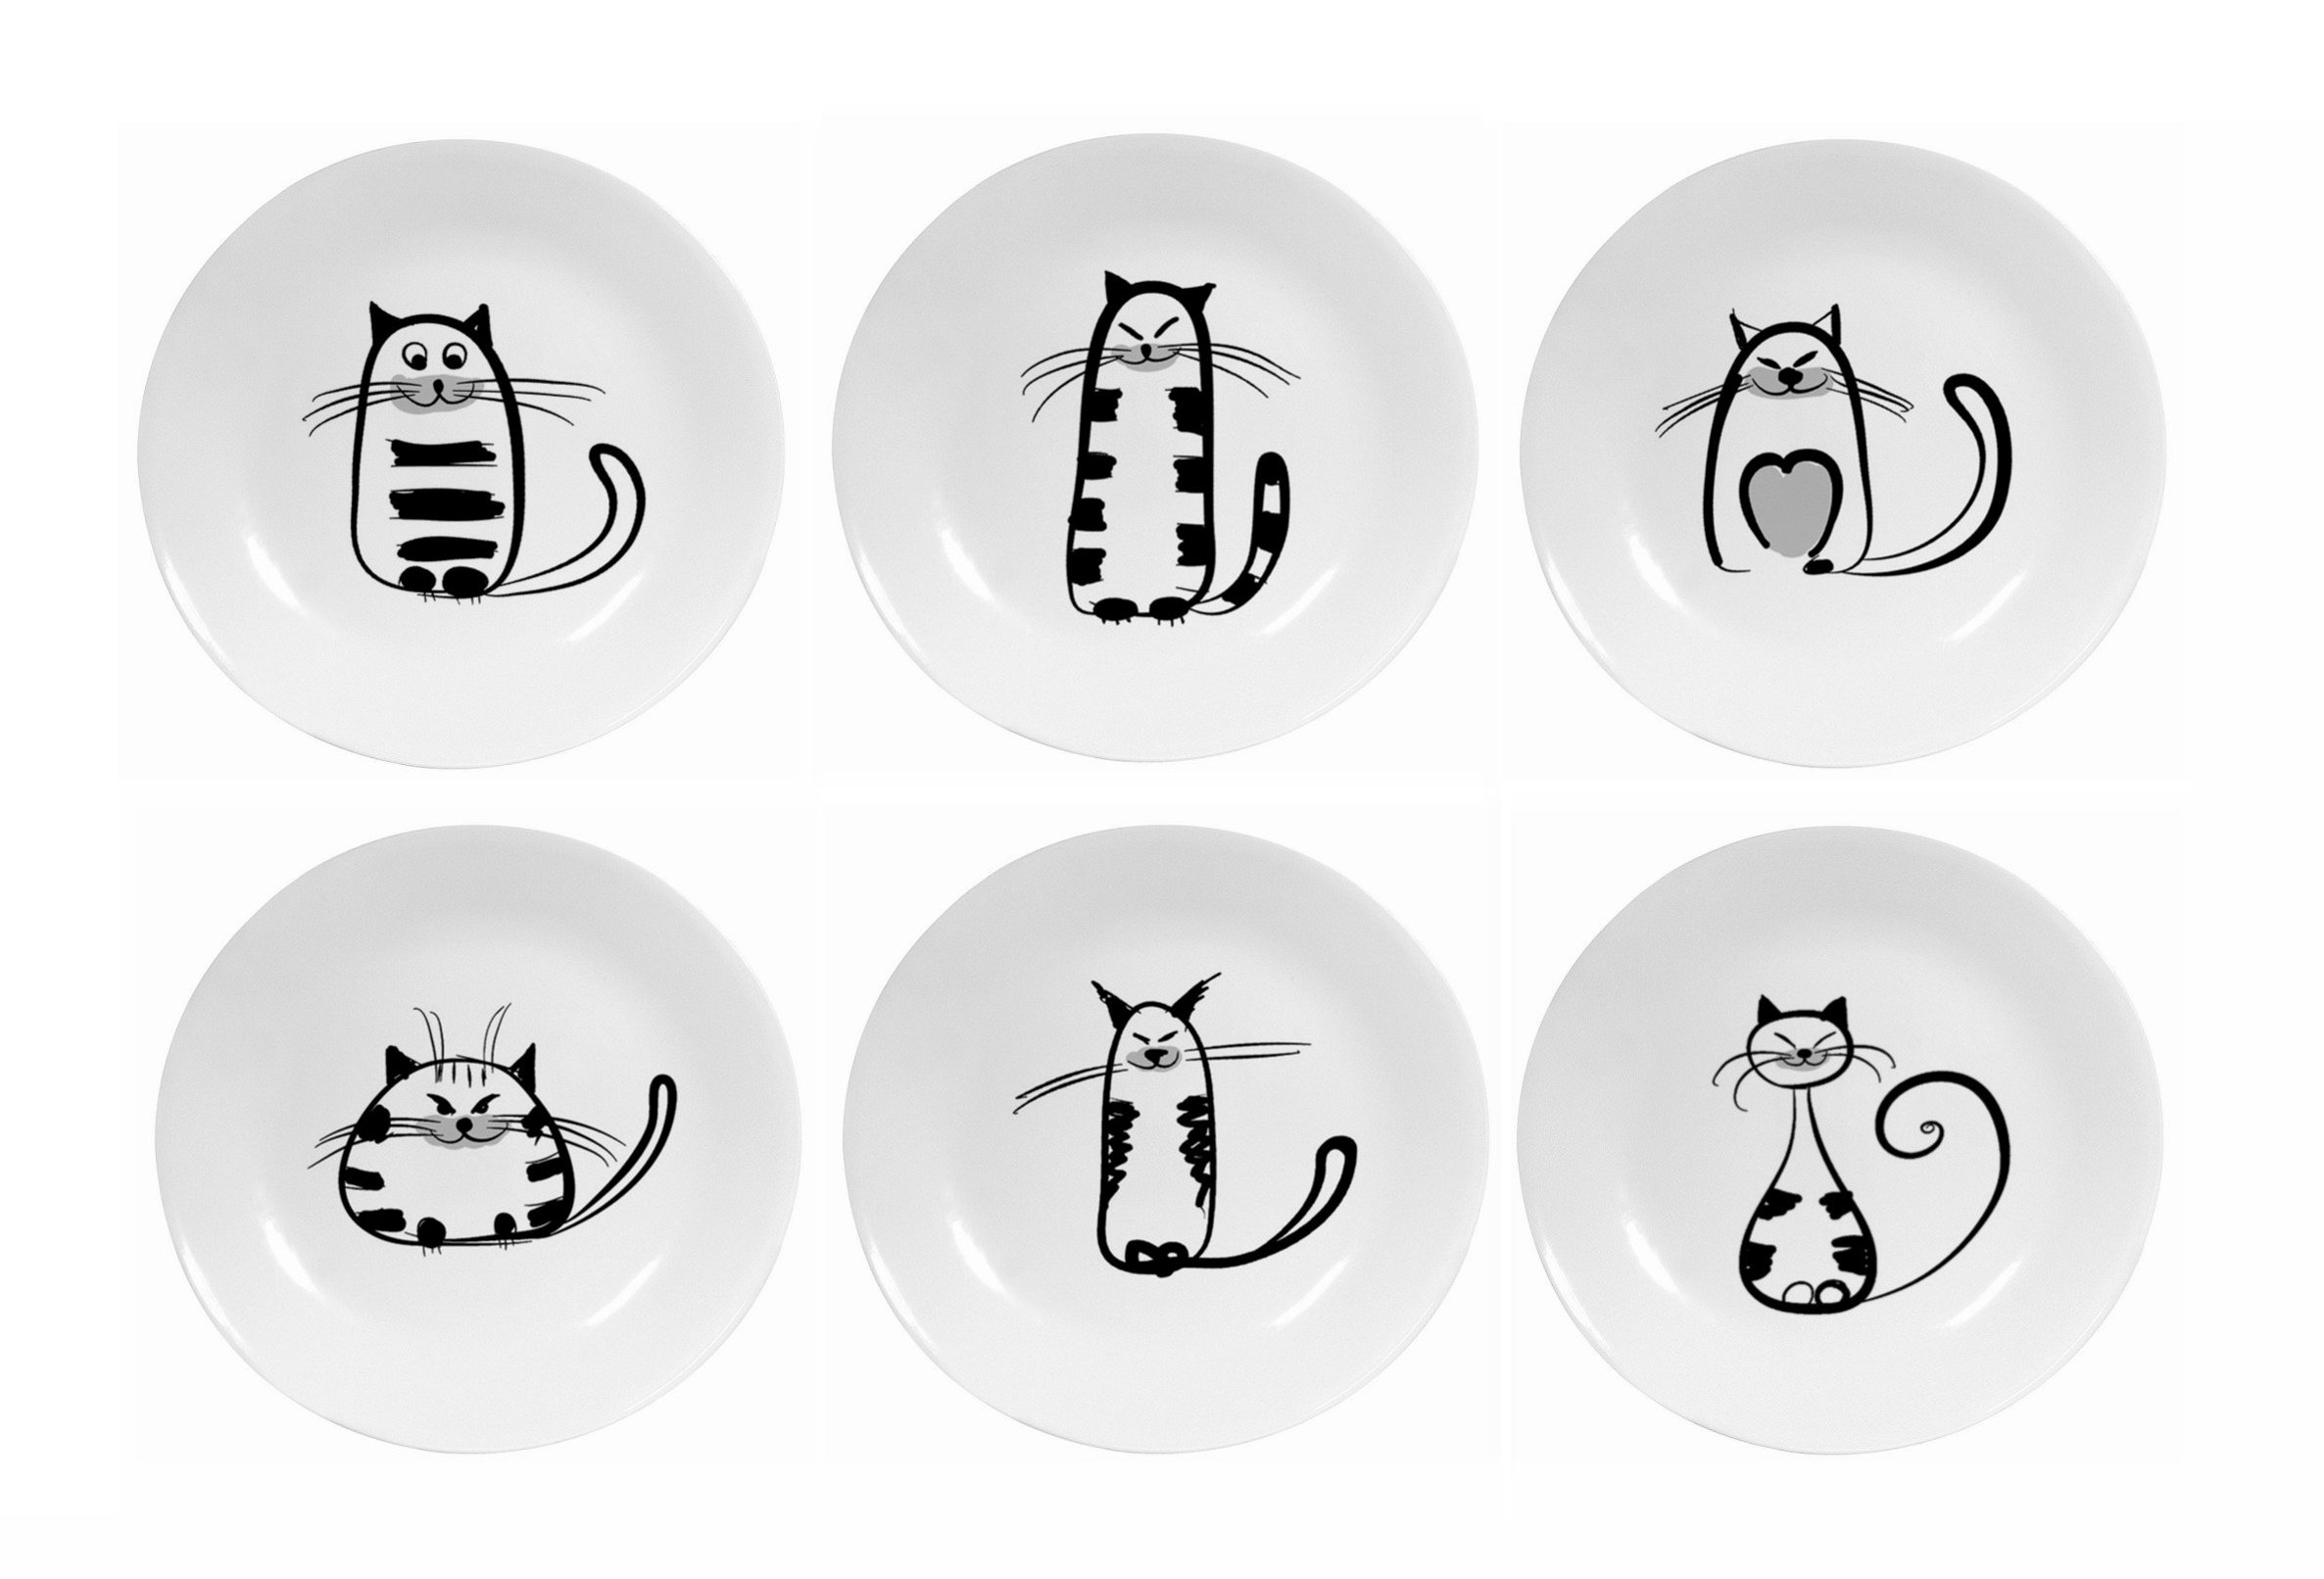 Hoocozi Small Size Resuable Round Ceramic Cat Pattern Saucer Plates, Porcelain Seasoning Dishes Tea Cup Holders by, 6Pcs, White